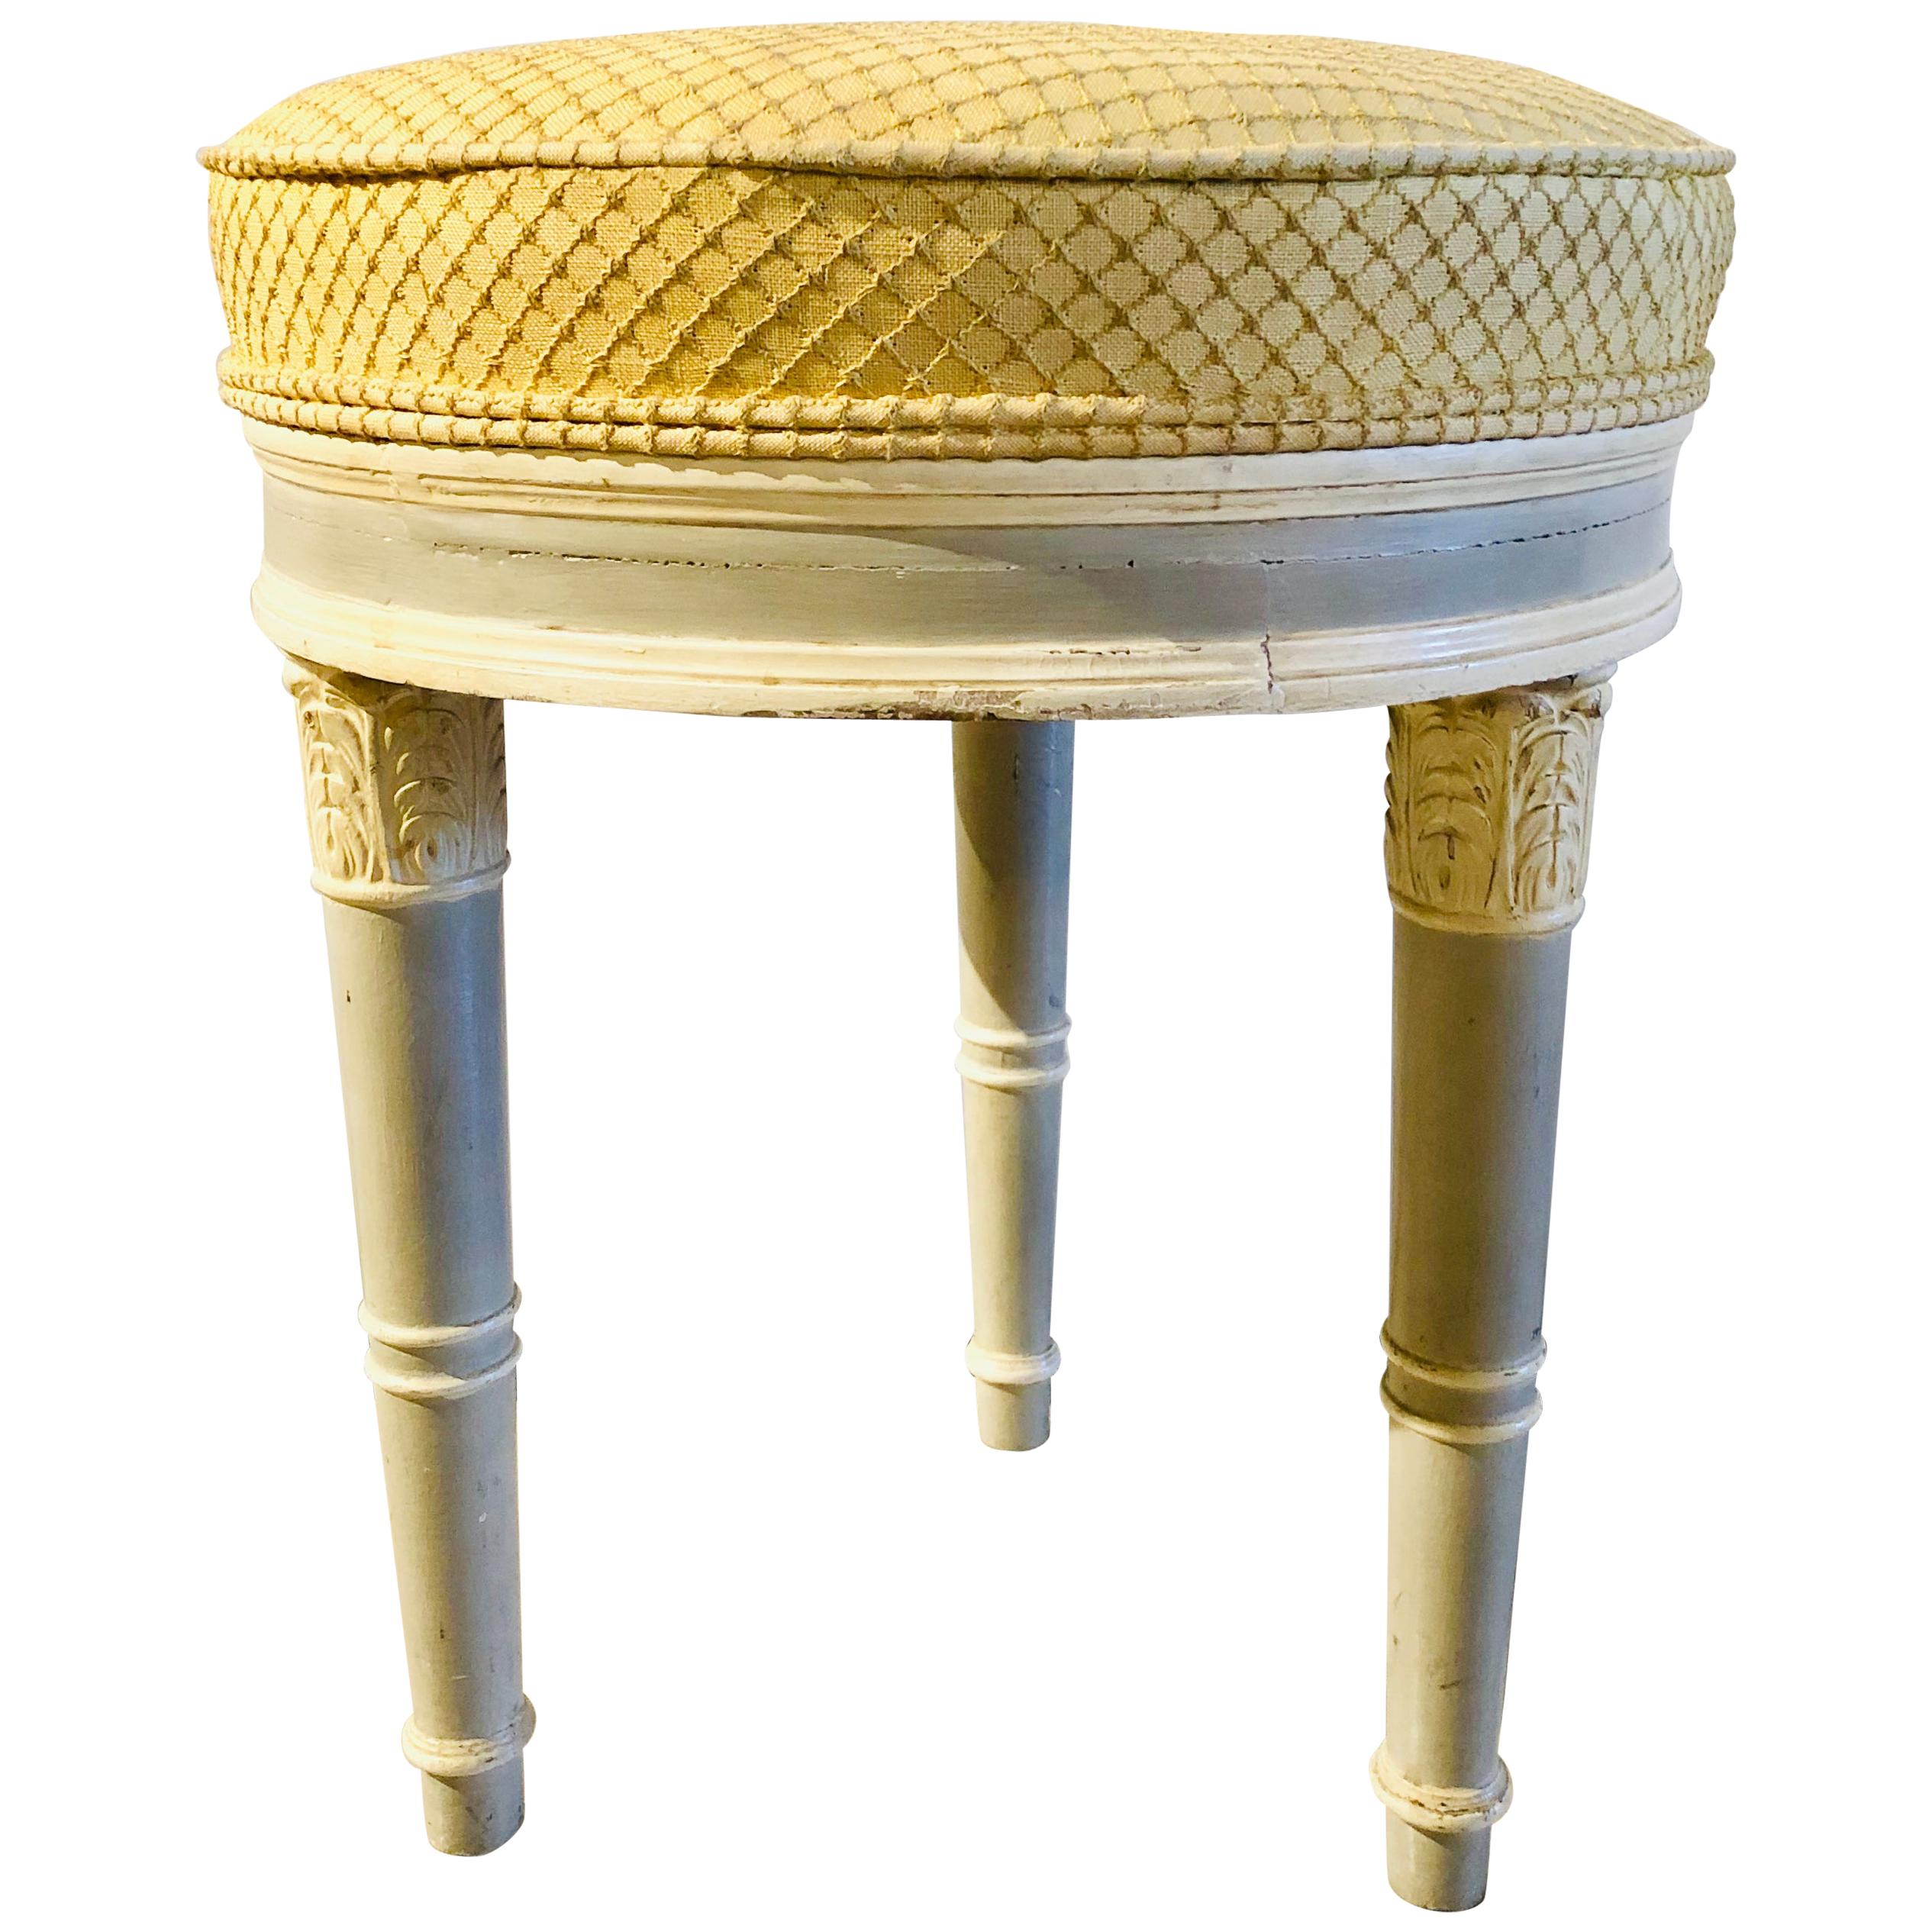 Swedish Louis XVI Style Paint Decorated Foot Stool or Bench